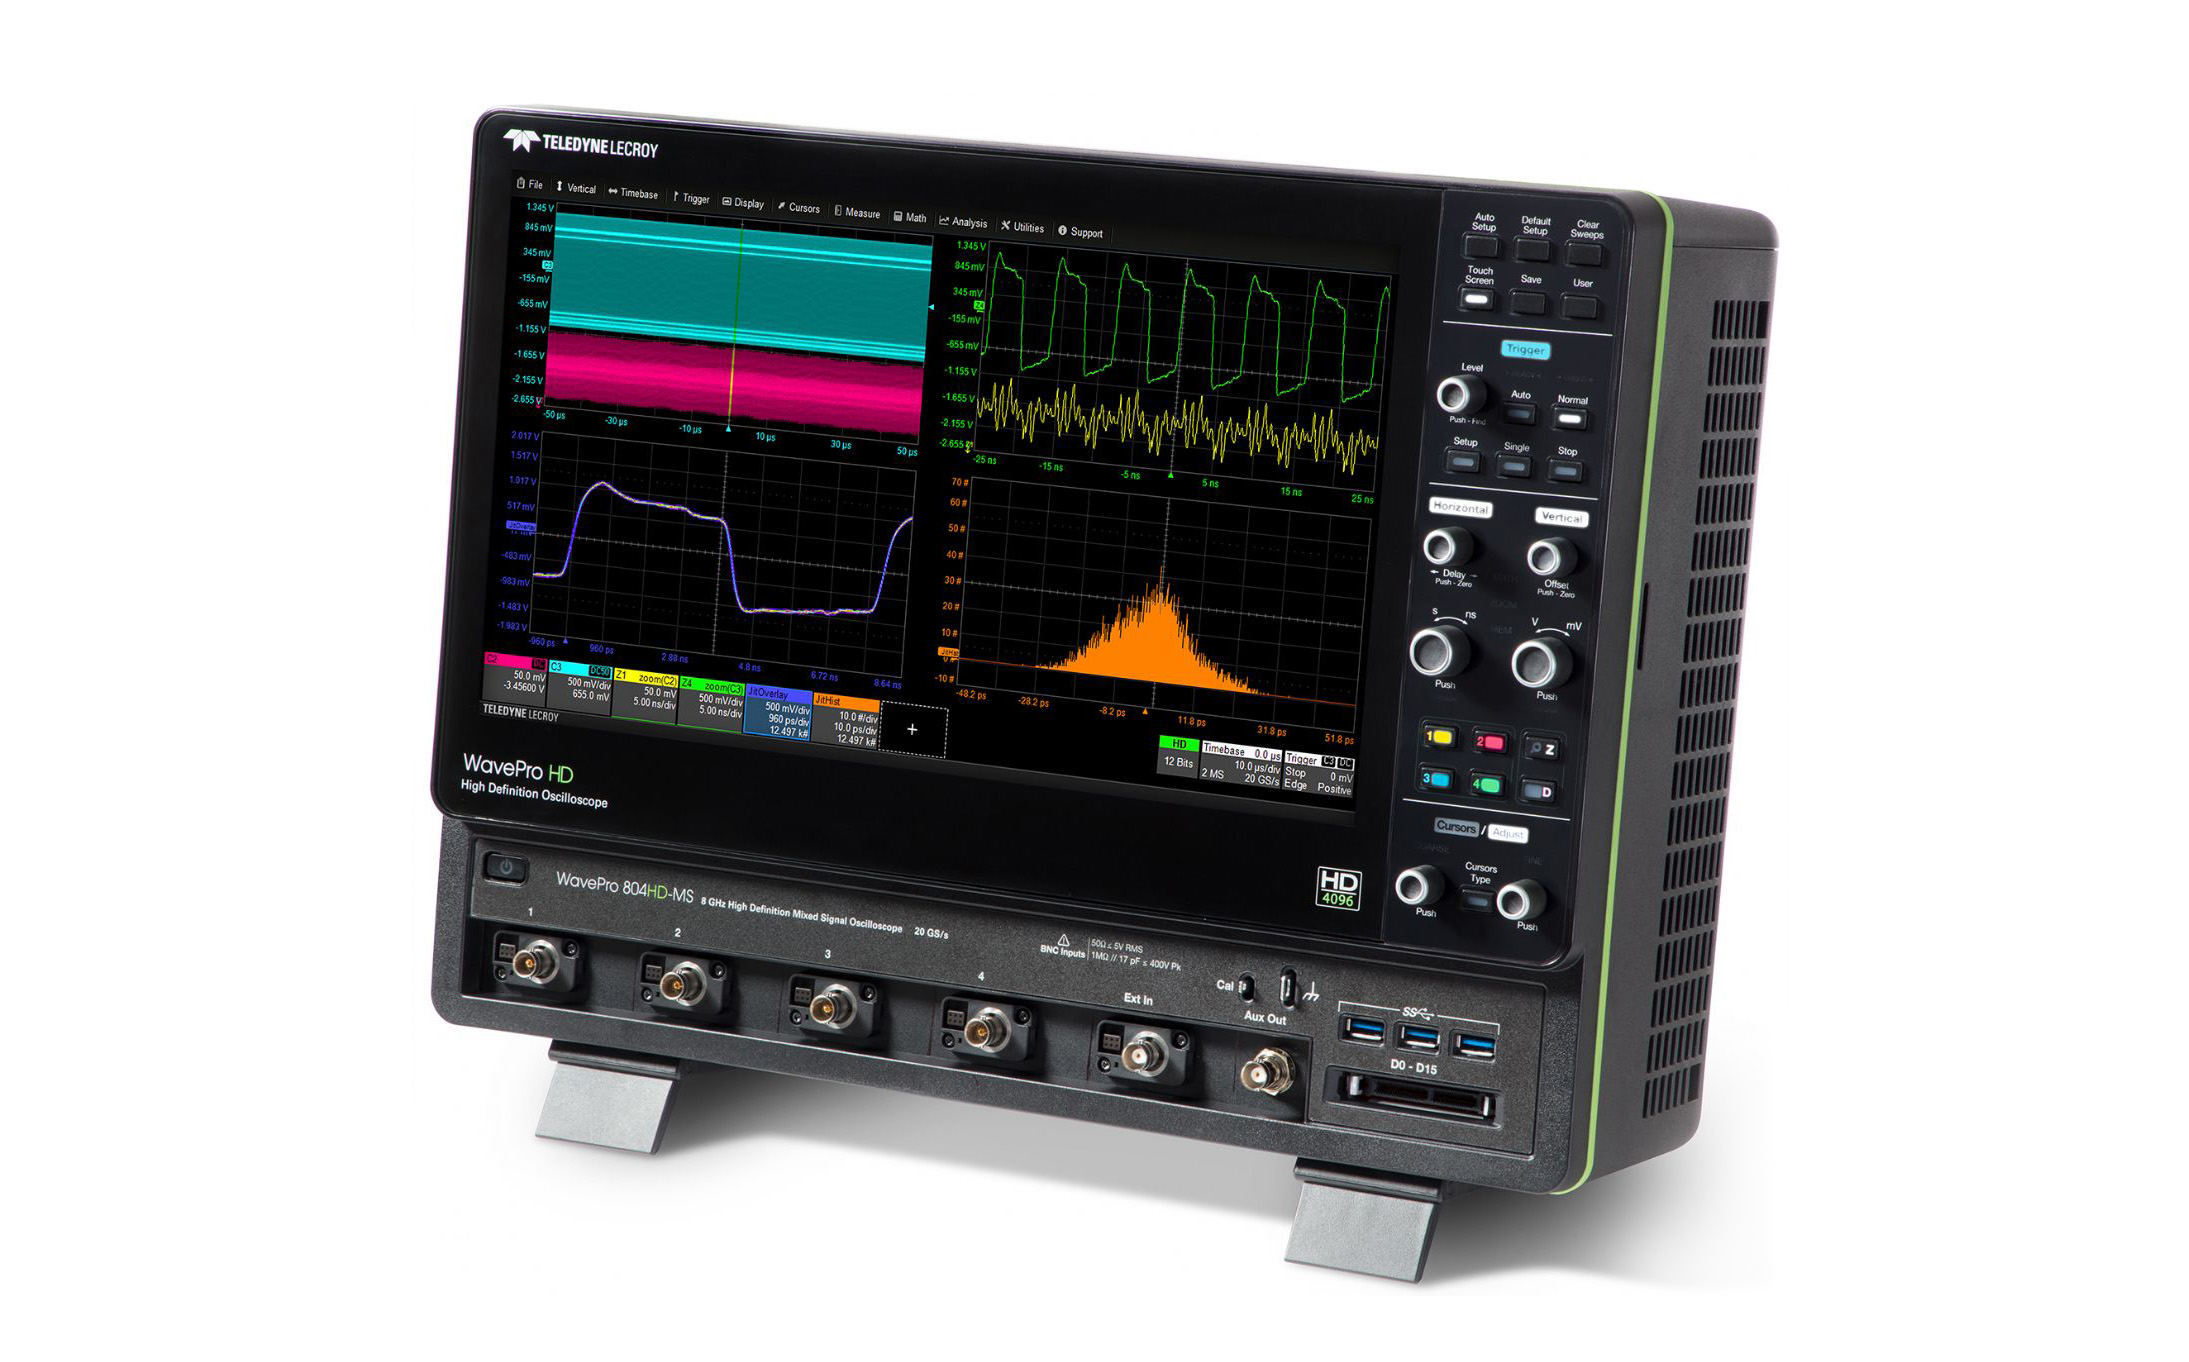 WavePro HD Oscilloscope